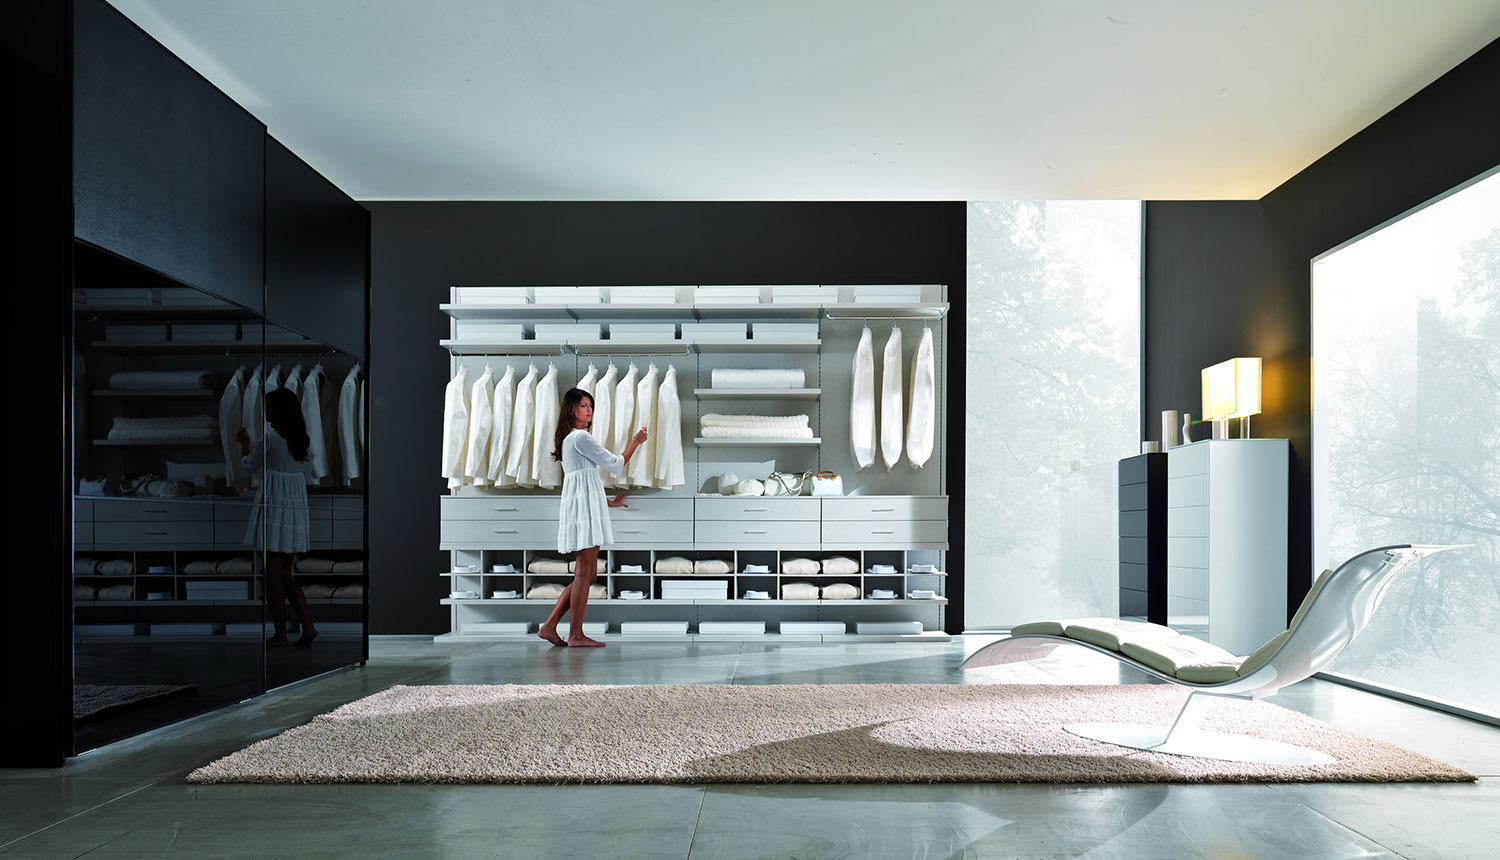 excoffier maitre artisan specialiste du dressing sur mesure a lyon. Black Bedroom Furniture Sets. Home Design Ideas